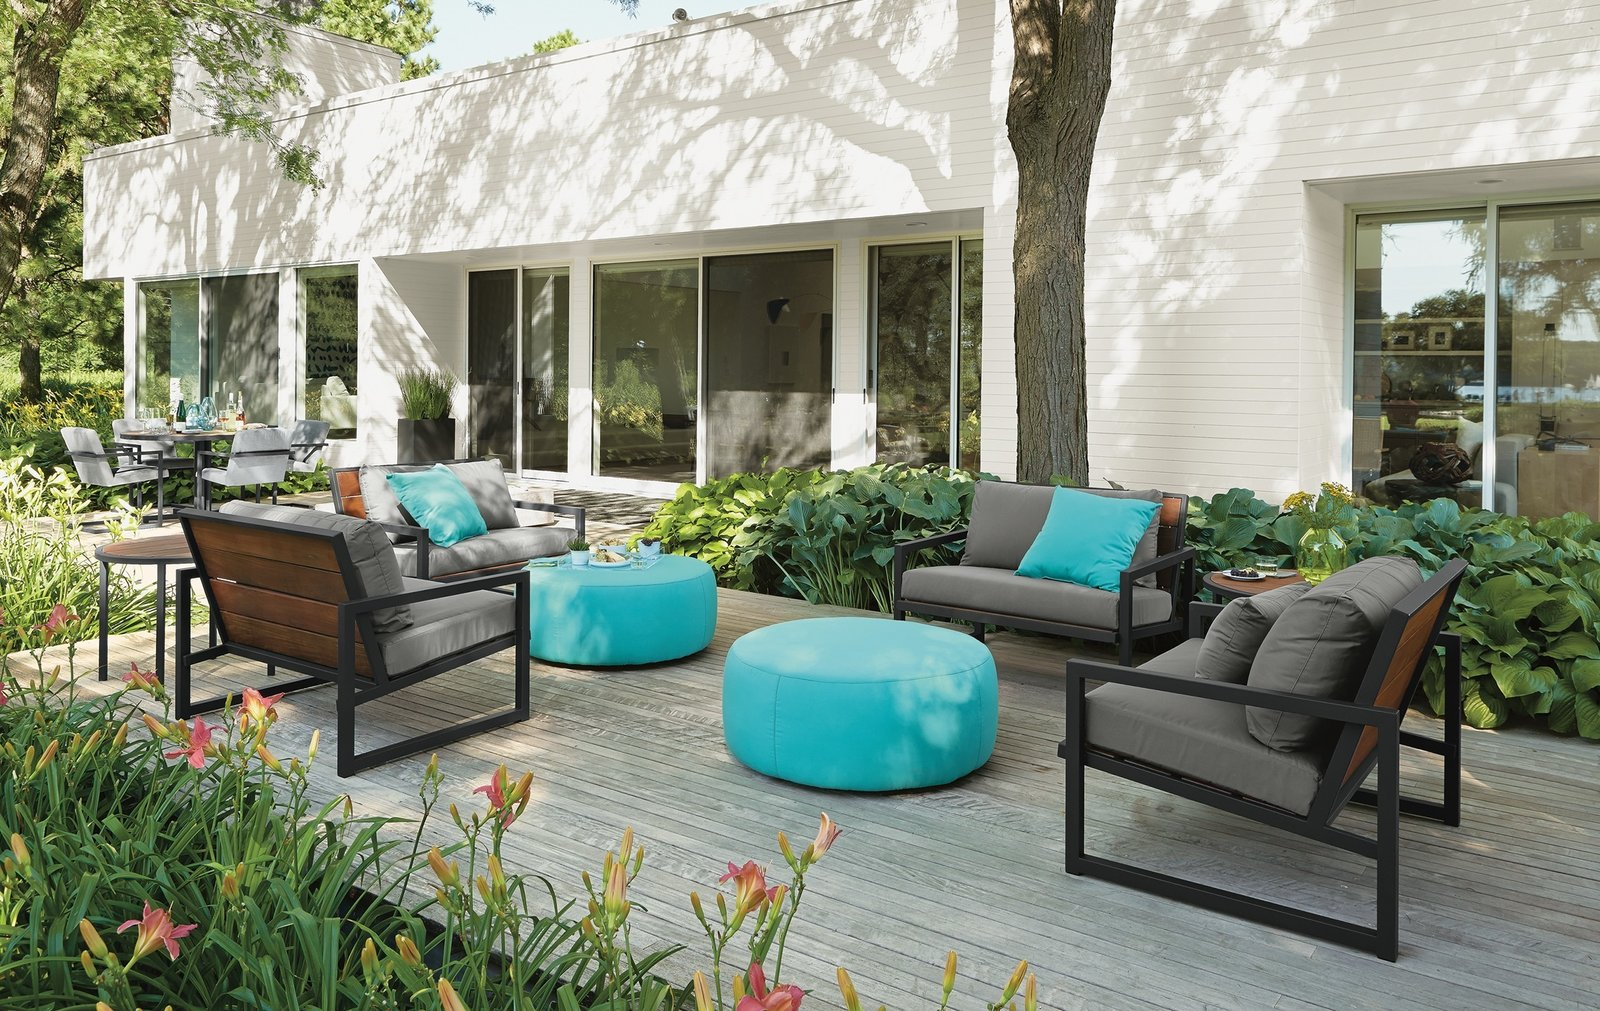 Montego sofa with cushions, Montego lounge chair with cushions, Boyd round ottoman, solid outdoor pillows Tagged: Outdoor, Back Yard, Large Patio, Porch, Deck, Wood Patio, Porch, Deck, Gardens, and Shrubs. Expert Design Advice: Outdoor Dining Spaces - Photo 8 of 8